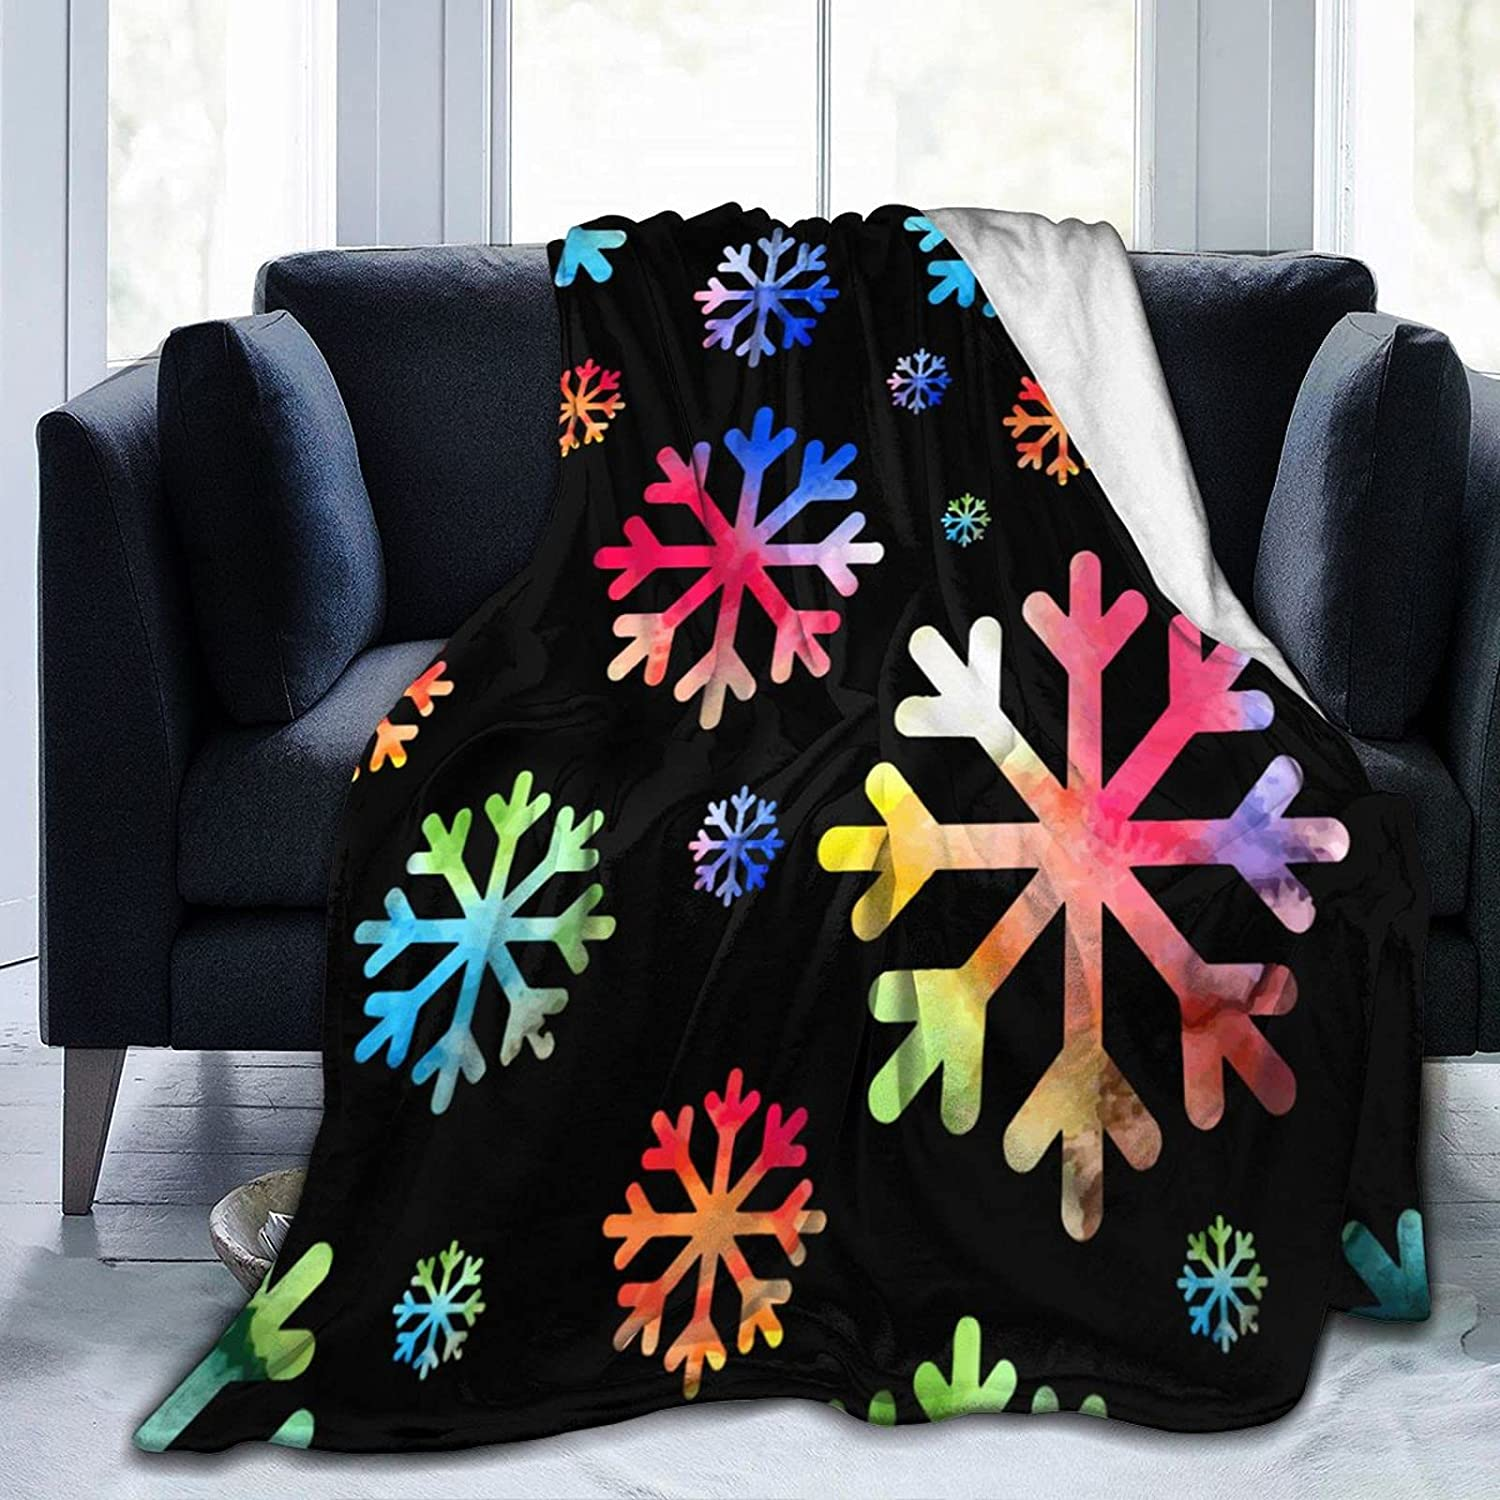 Flannel Large discharge Baltimore Mall sale Fleece Throw Blanket Seamles Snowflake Watercolor Vector